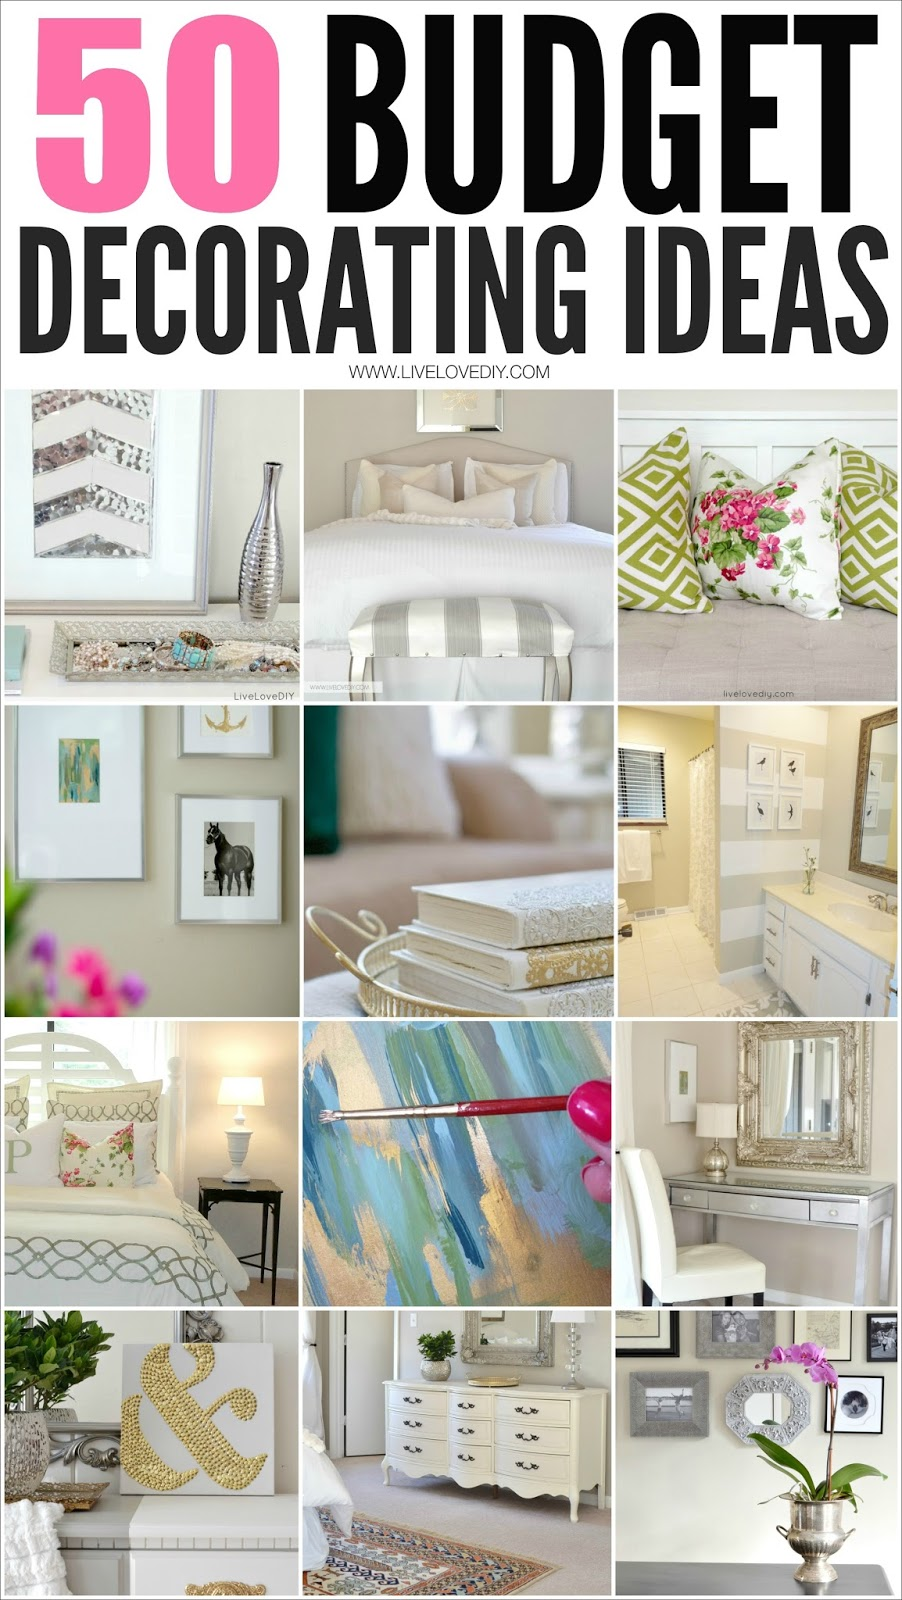 LiveLoveDIY: 50 Budget Decorating Tips You Should Know!